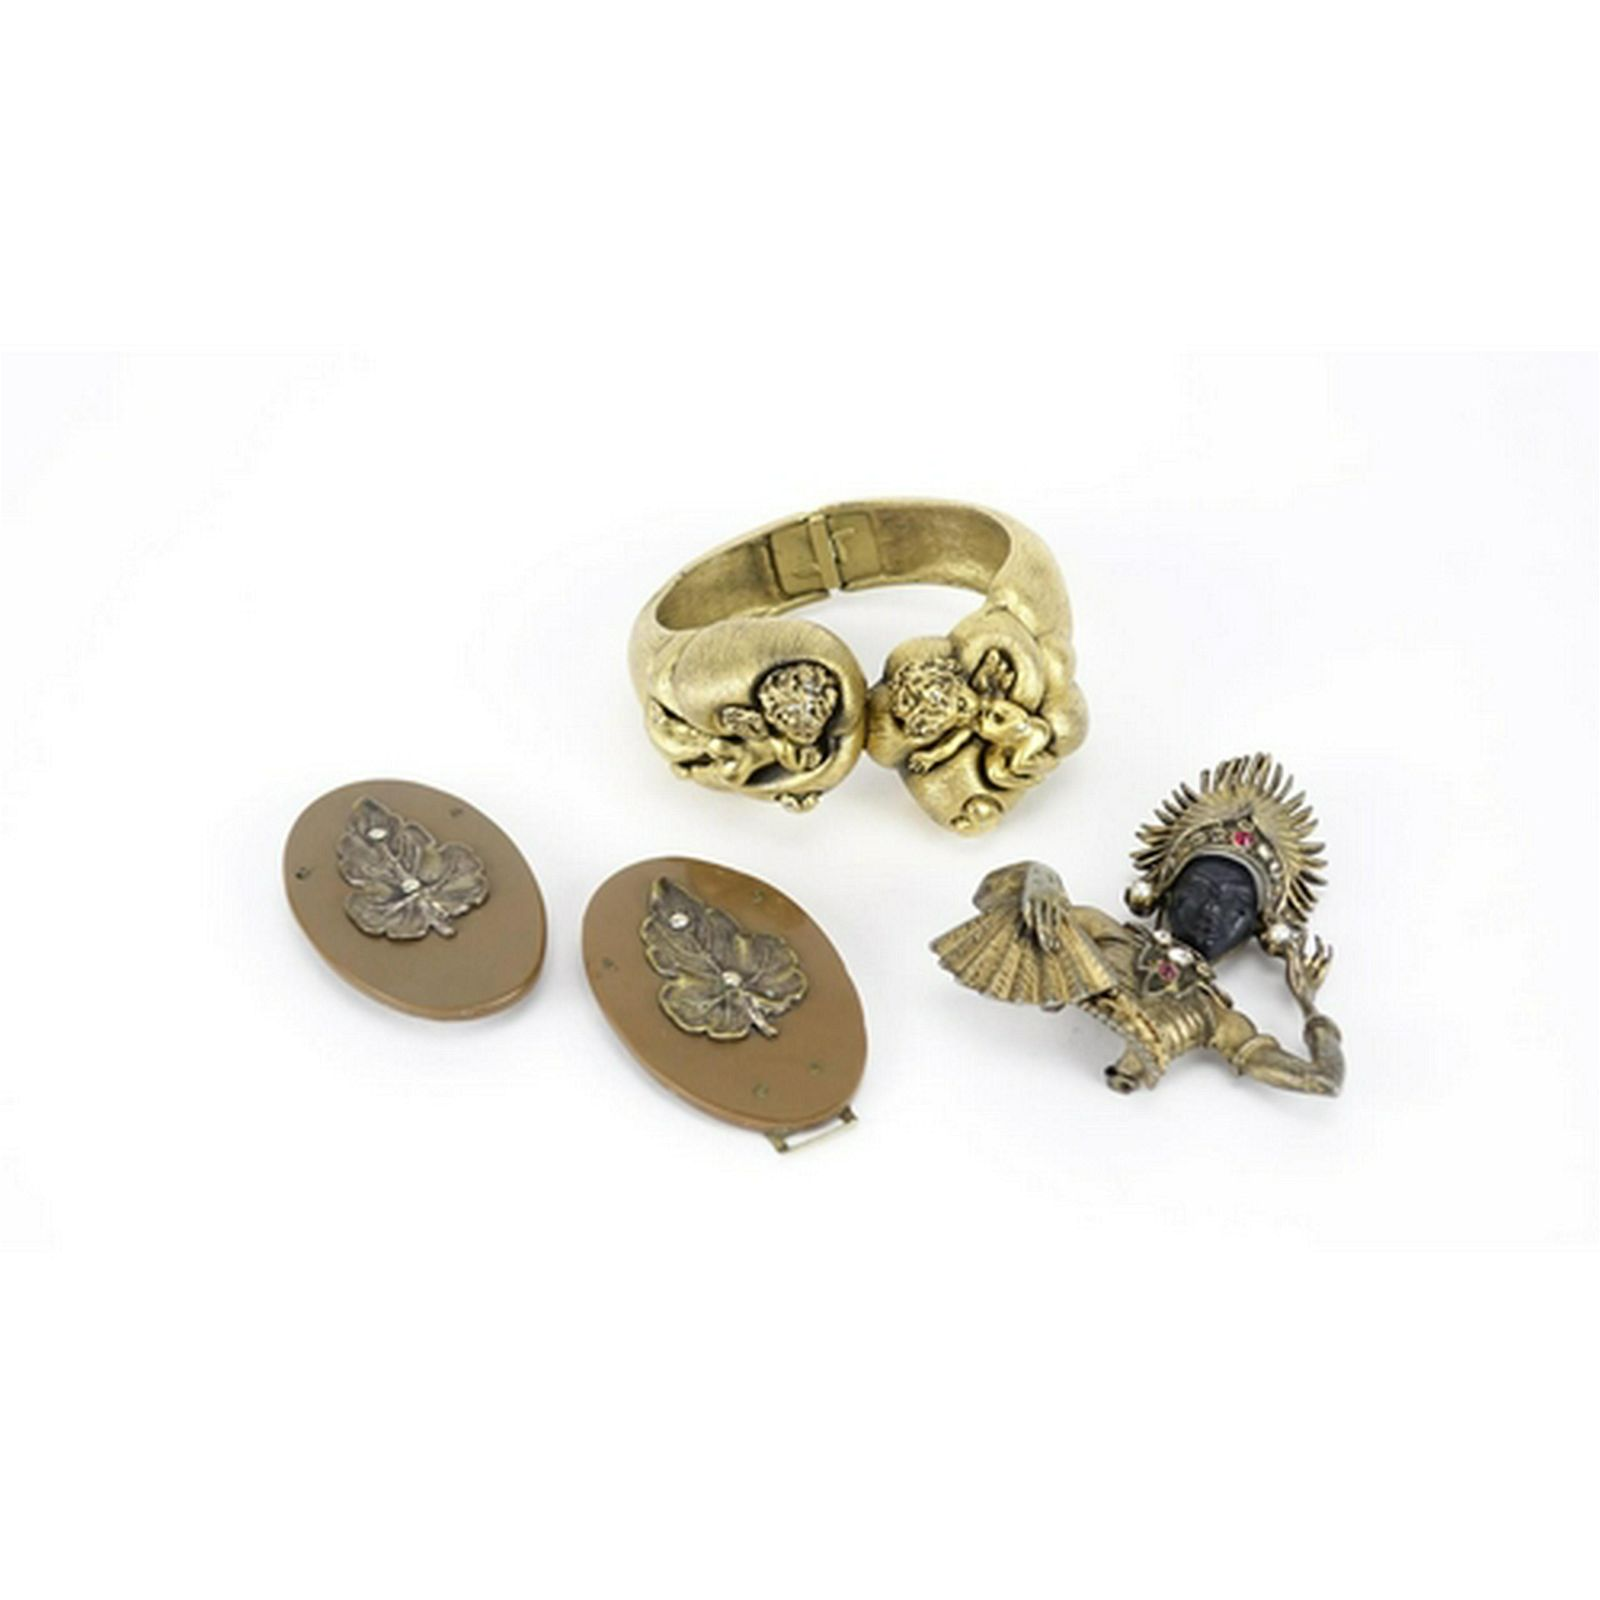 Vintage and later jewellery including a Tortolani